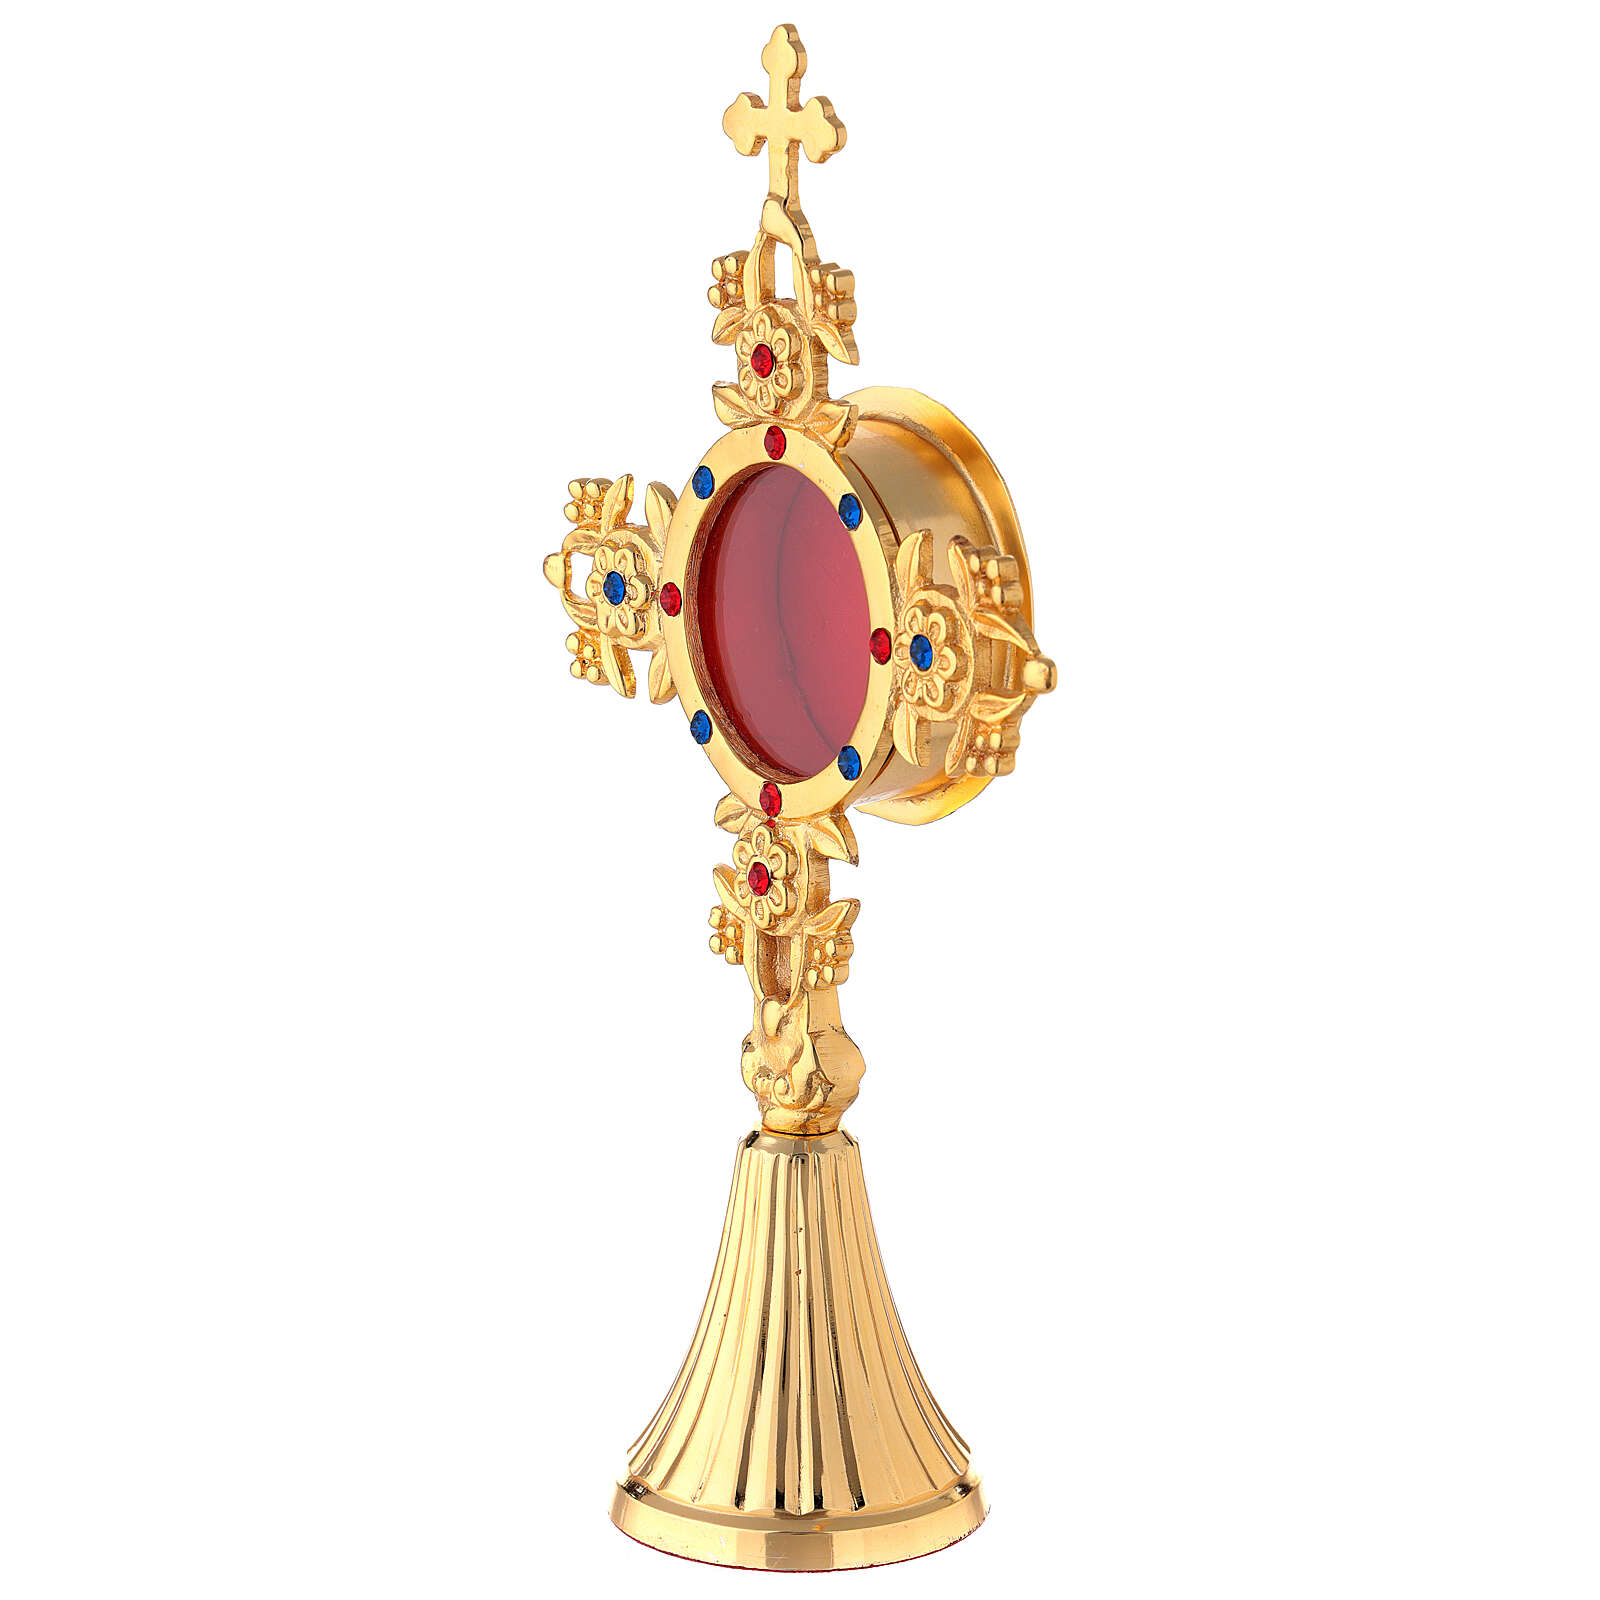 Gold plated brass reliquary with crystals and leaf fruit pattern 9 3/4 in 4